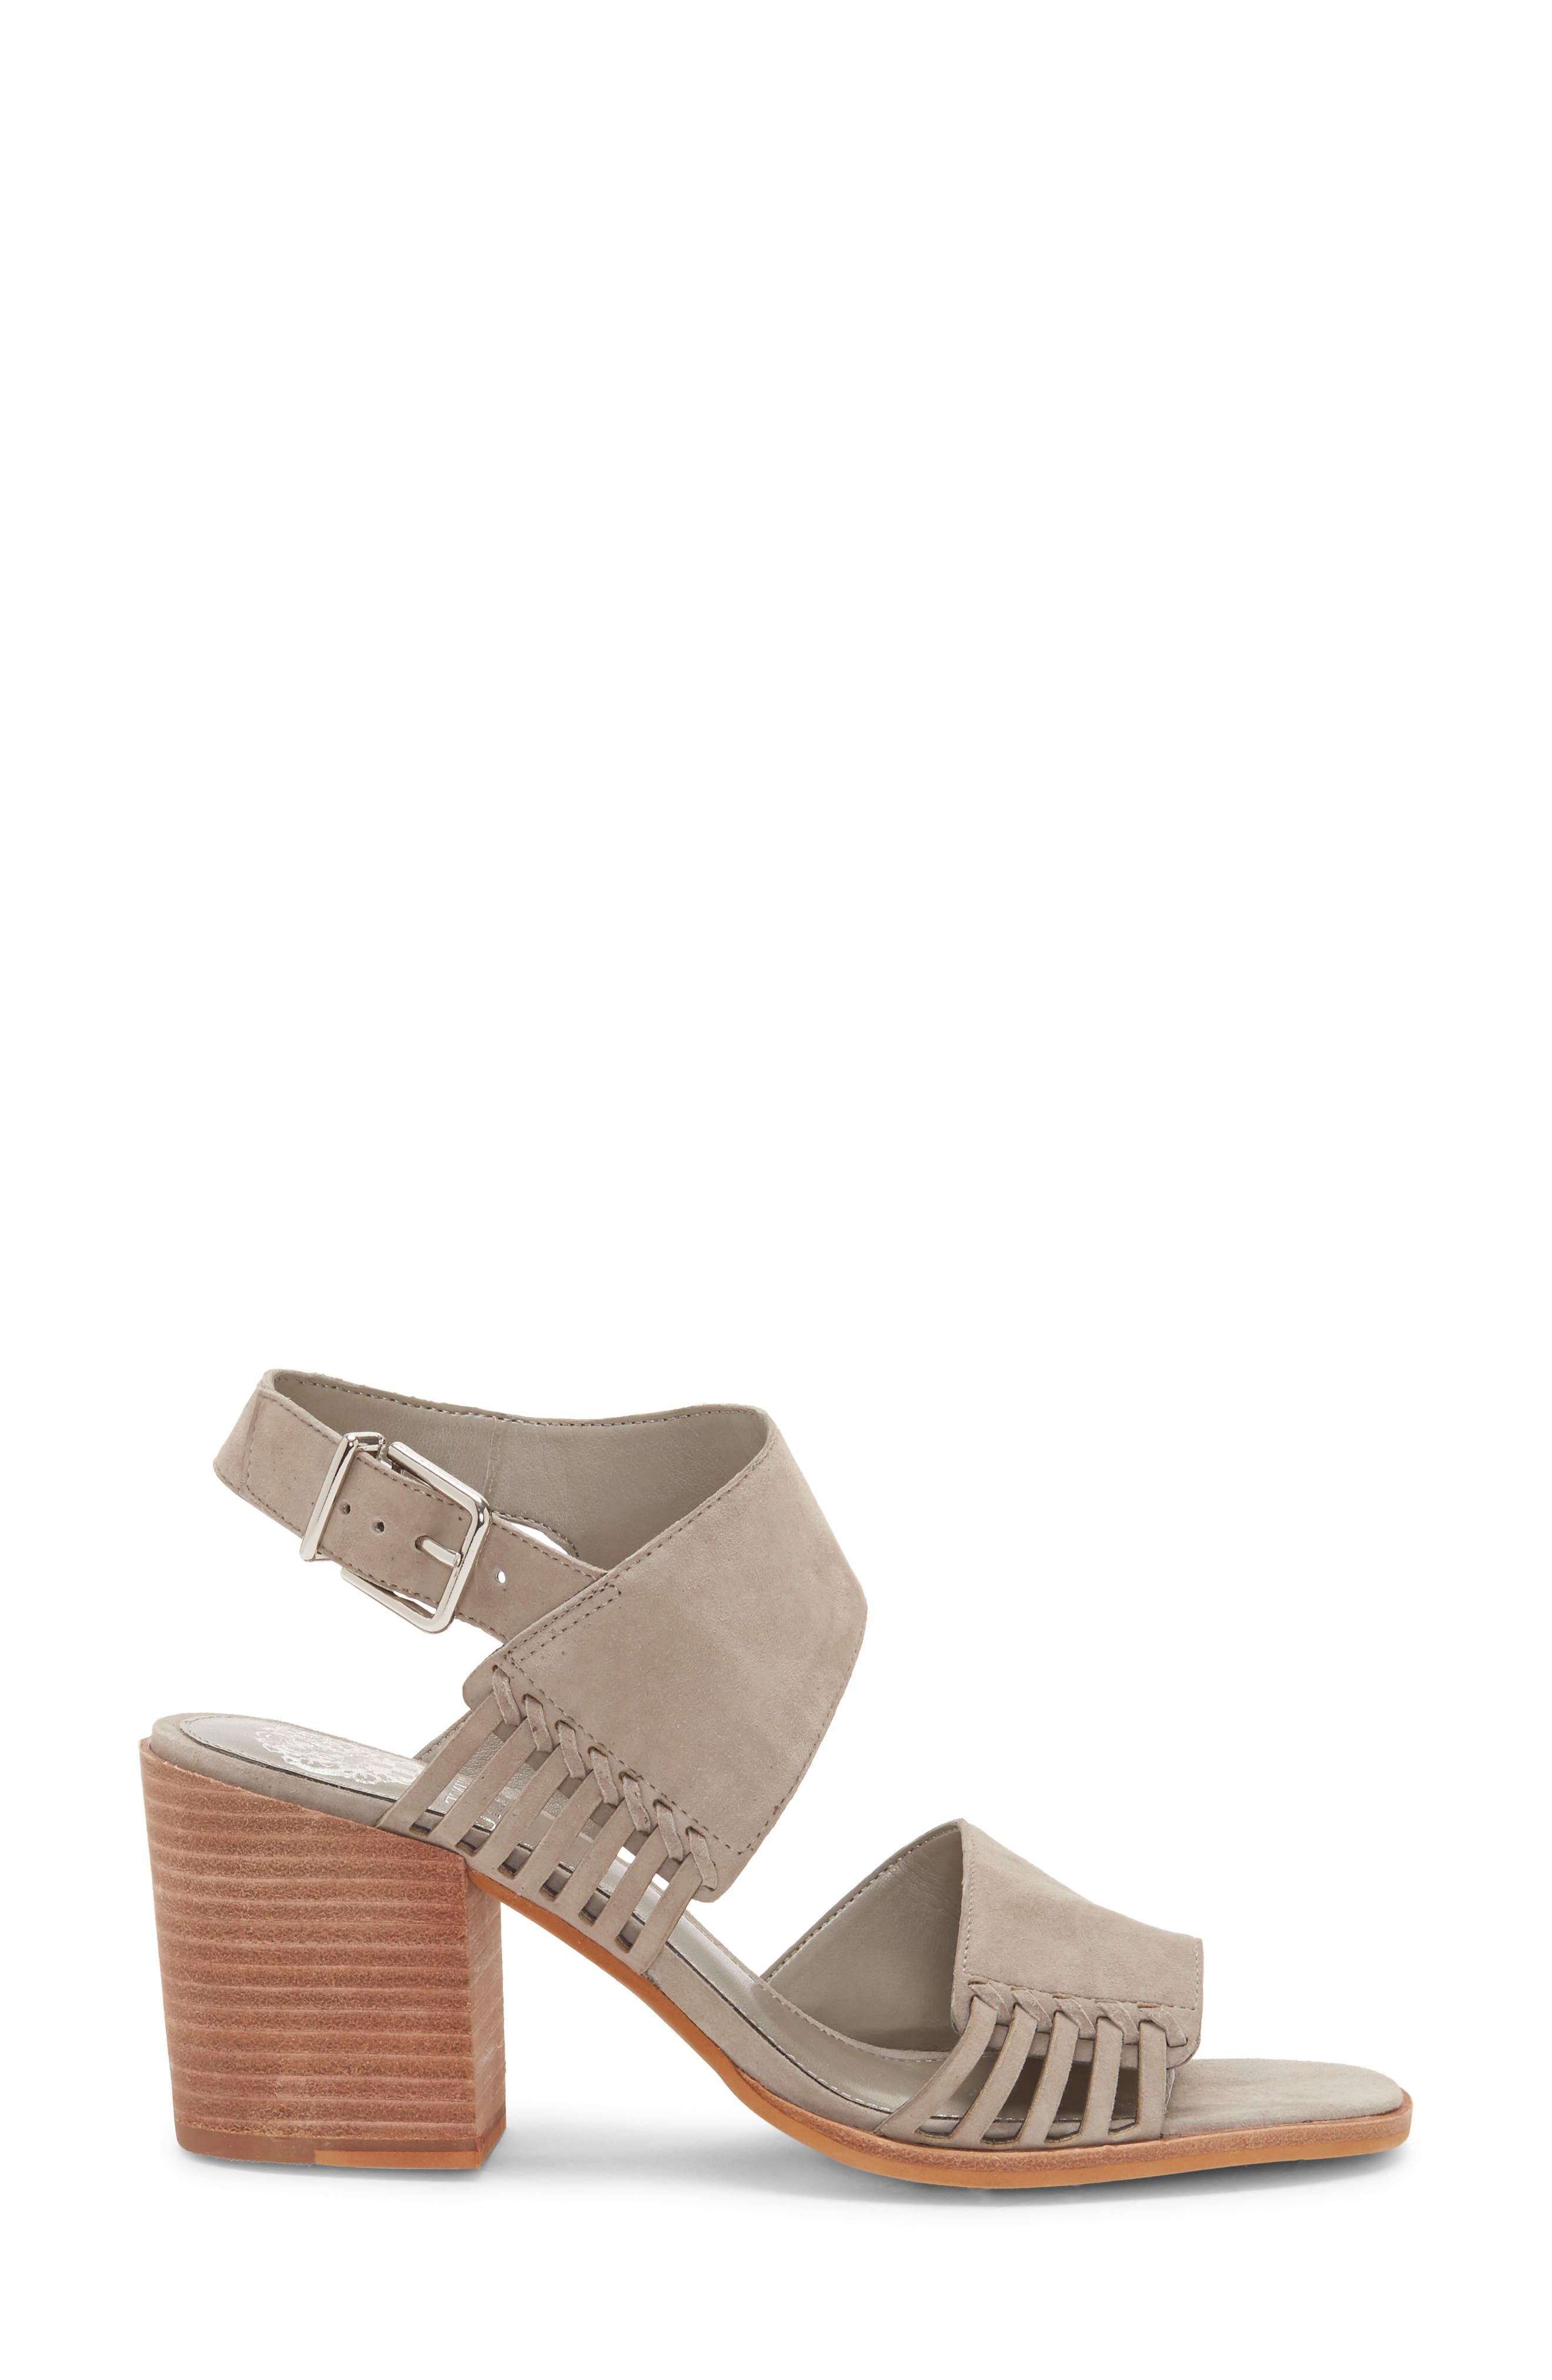 VINCE CAMUTO, Karmelo Slingback Sandal, Alternate thumbnail 3, color, STORM GREY LEATHER